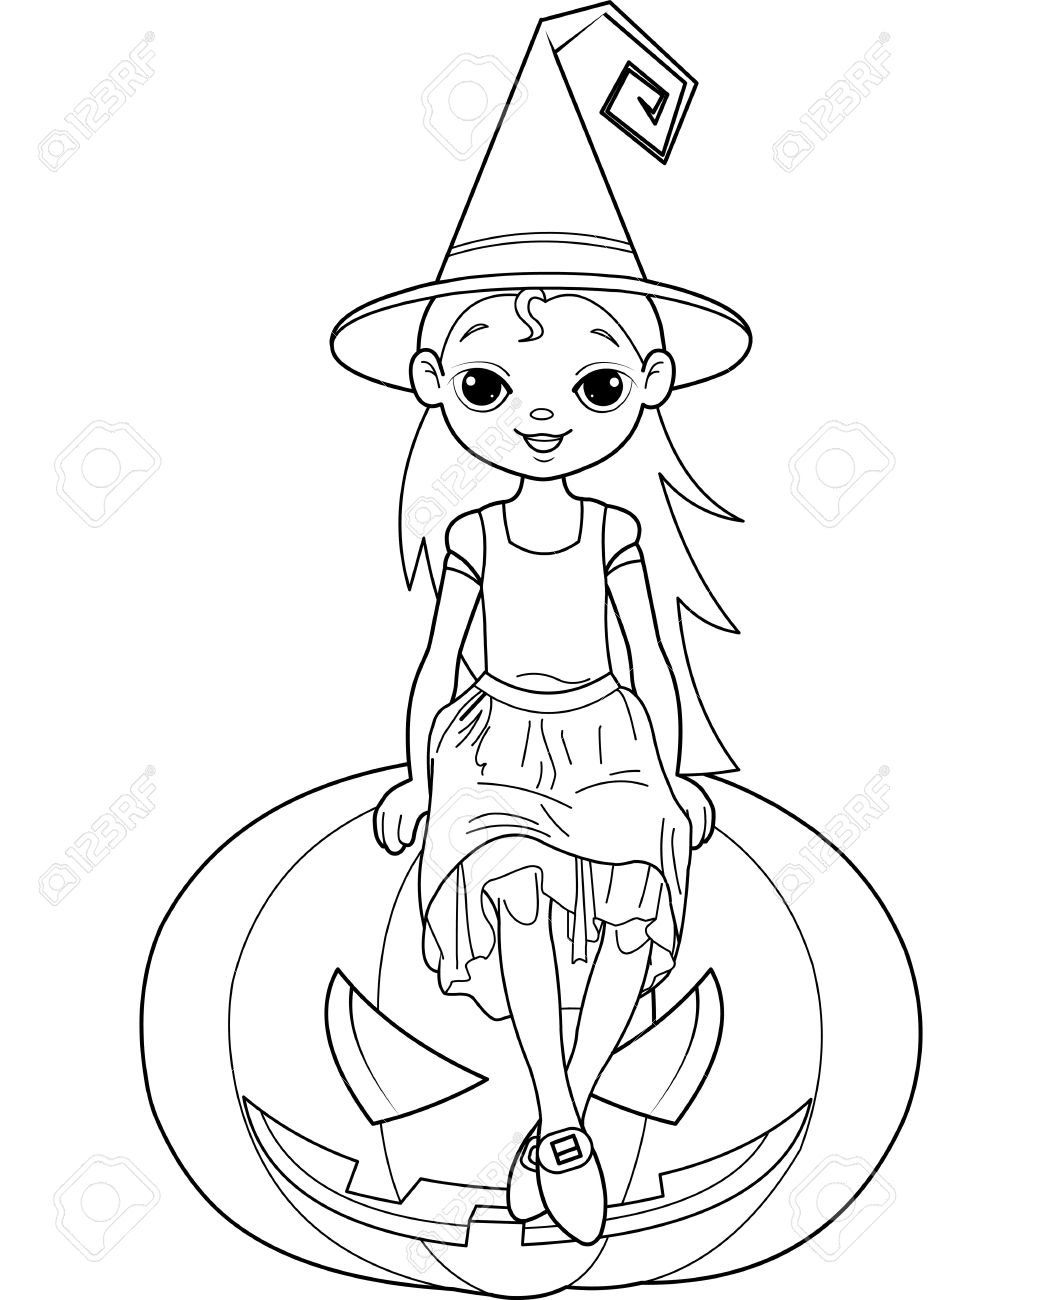 Halloween Witch Sitting On Pumpkin Coloring Page Royalty Free ...